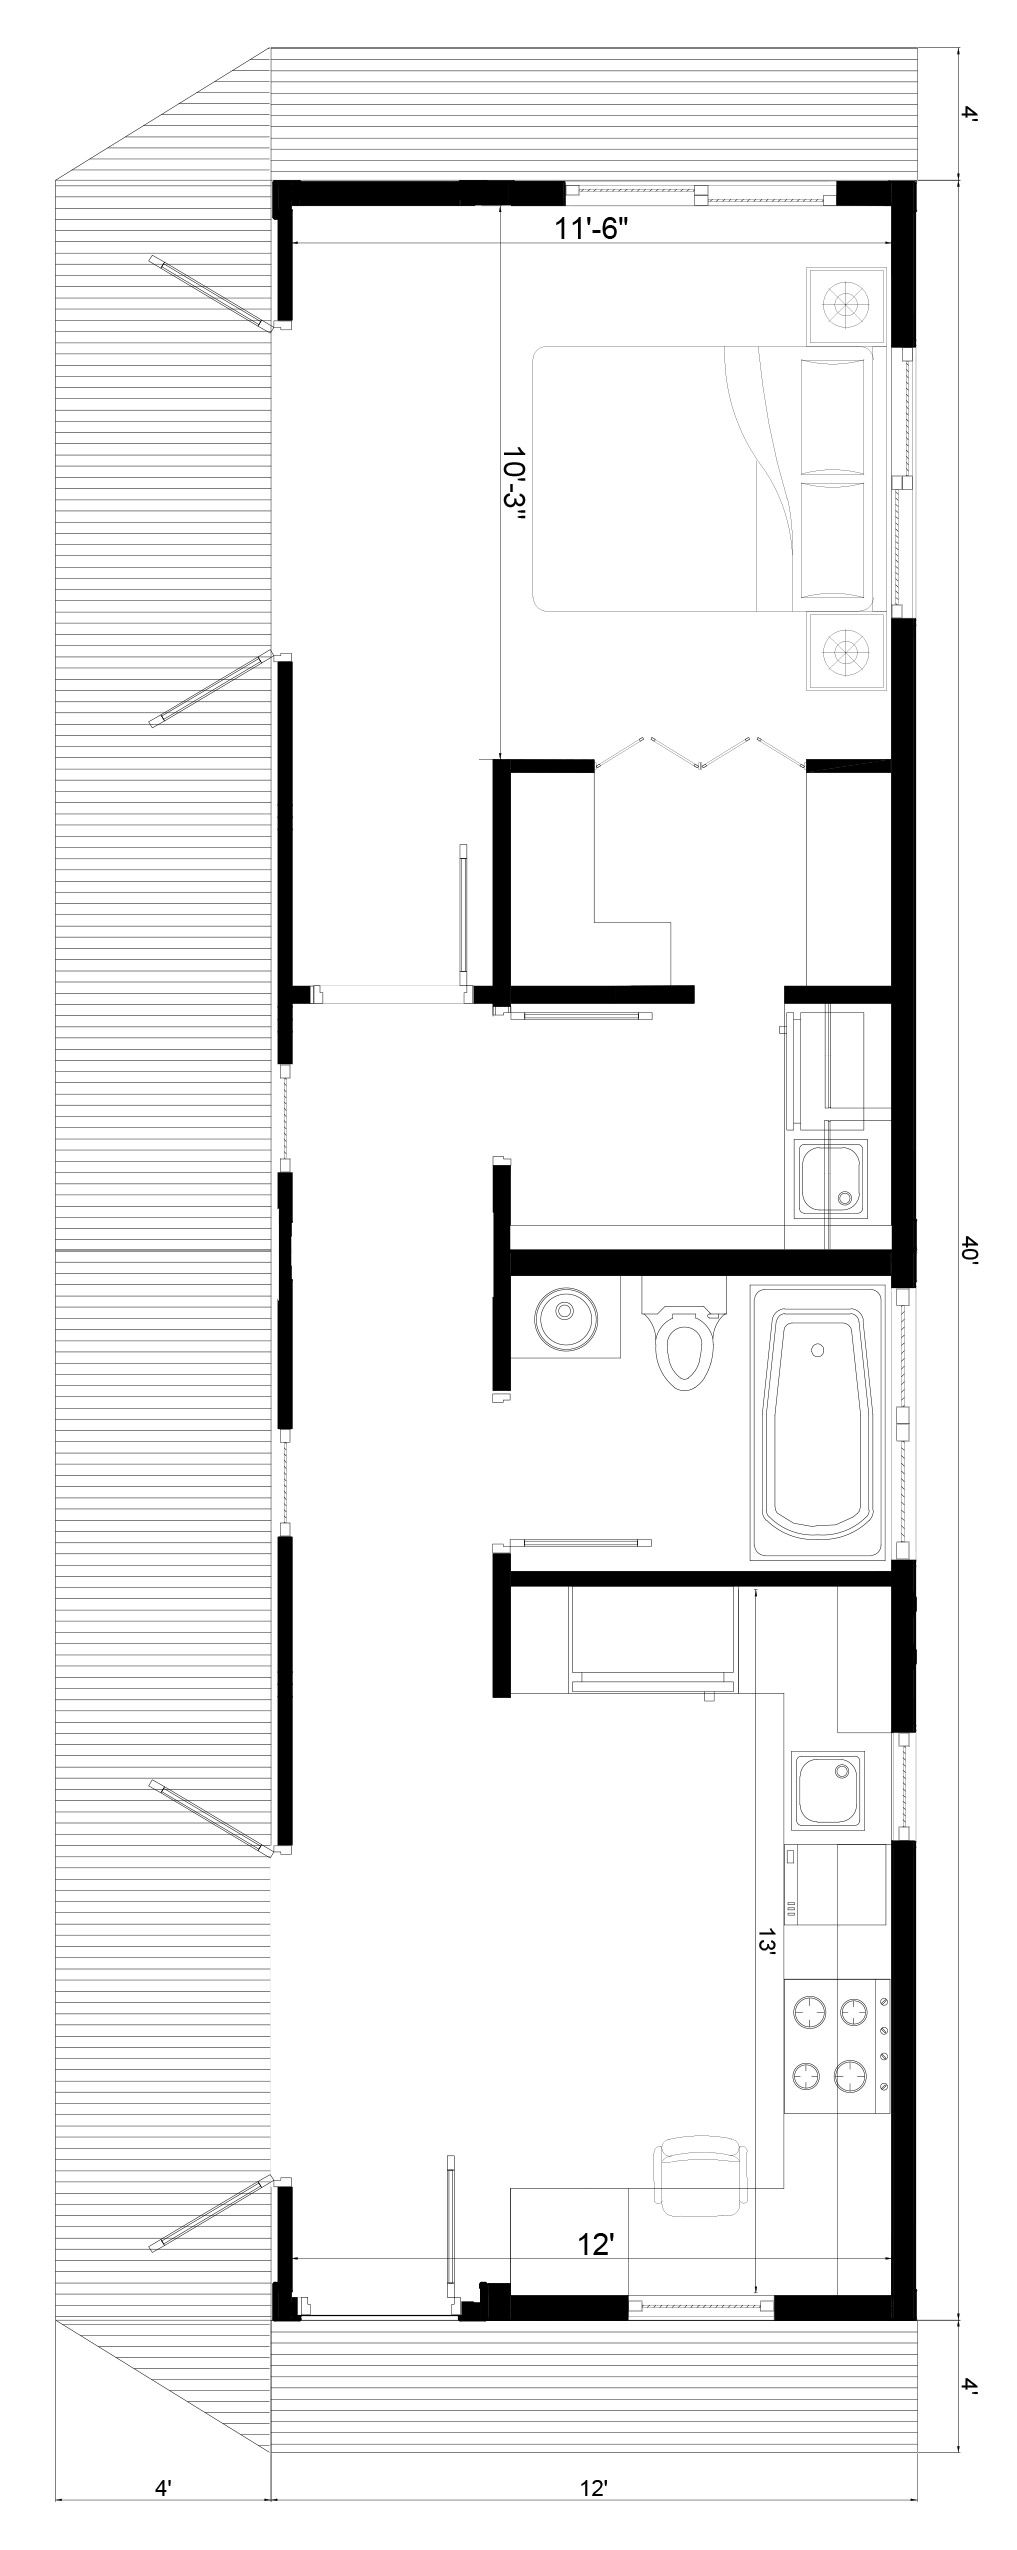 hawaii adu offers 14 accessory dwelling unit floor plans for new homes to fit any property  each